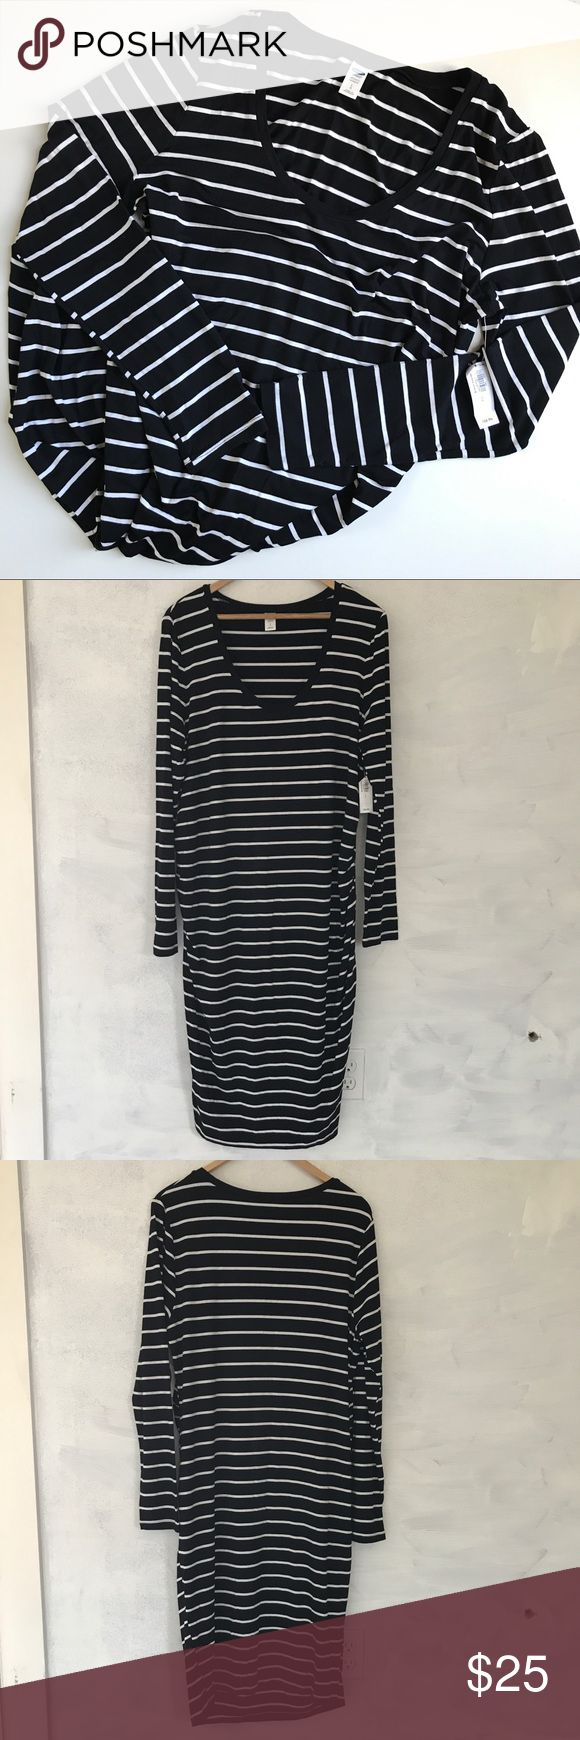 "Old Navy Maternity dress. NWT black & white stripe maternity dress from Old Navy. Long sleeve. Size large. Measures 20.5"" pit-to-pit and 42"" long. Sleeve length 18.5"". Sorry, no trades & I am unable to model. Old Navy Dresses"